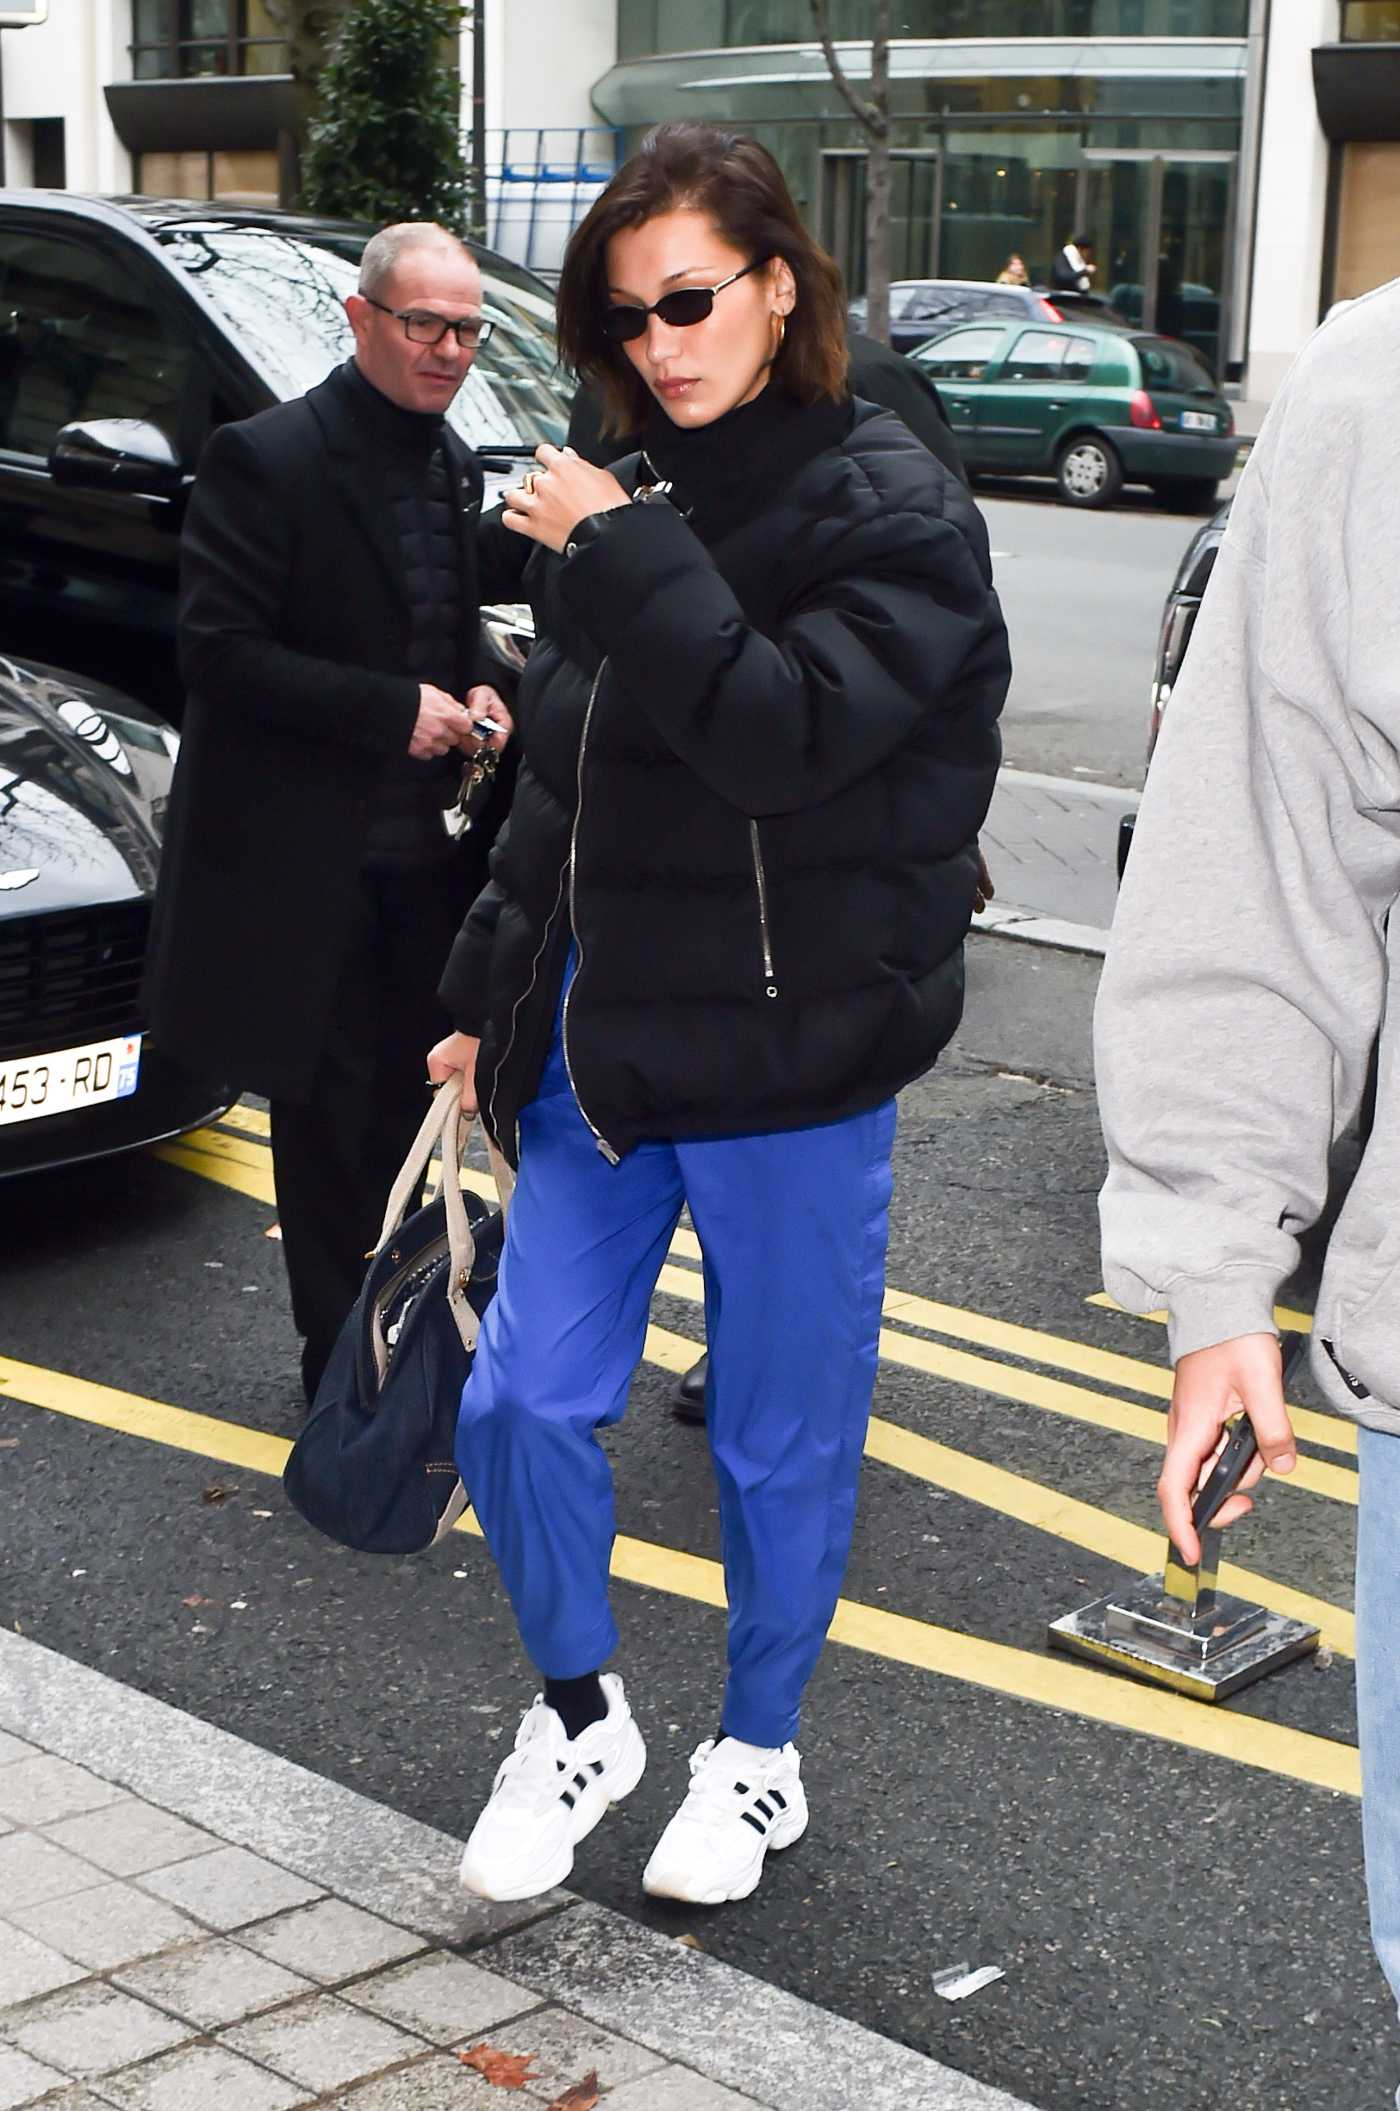 Bella Hadid in a Black Jacket Arrives for 2020 Paris Mens Fashion Week in Paris 01/14/2020